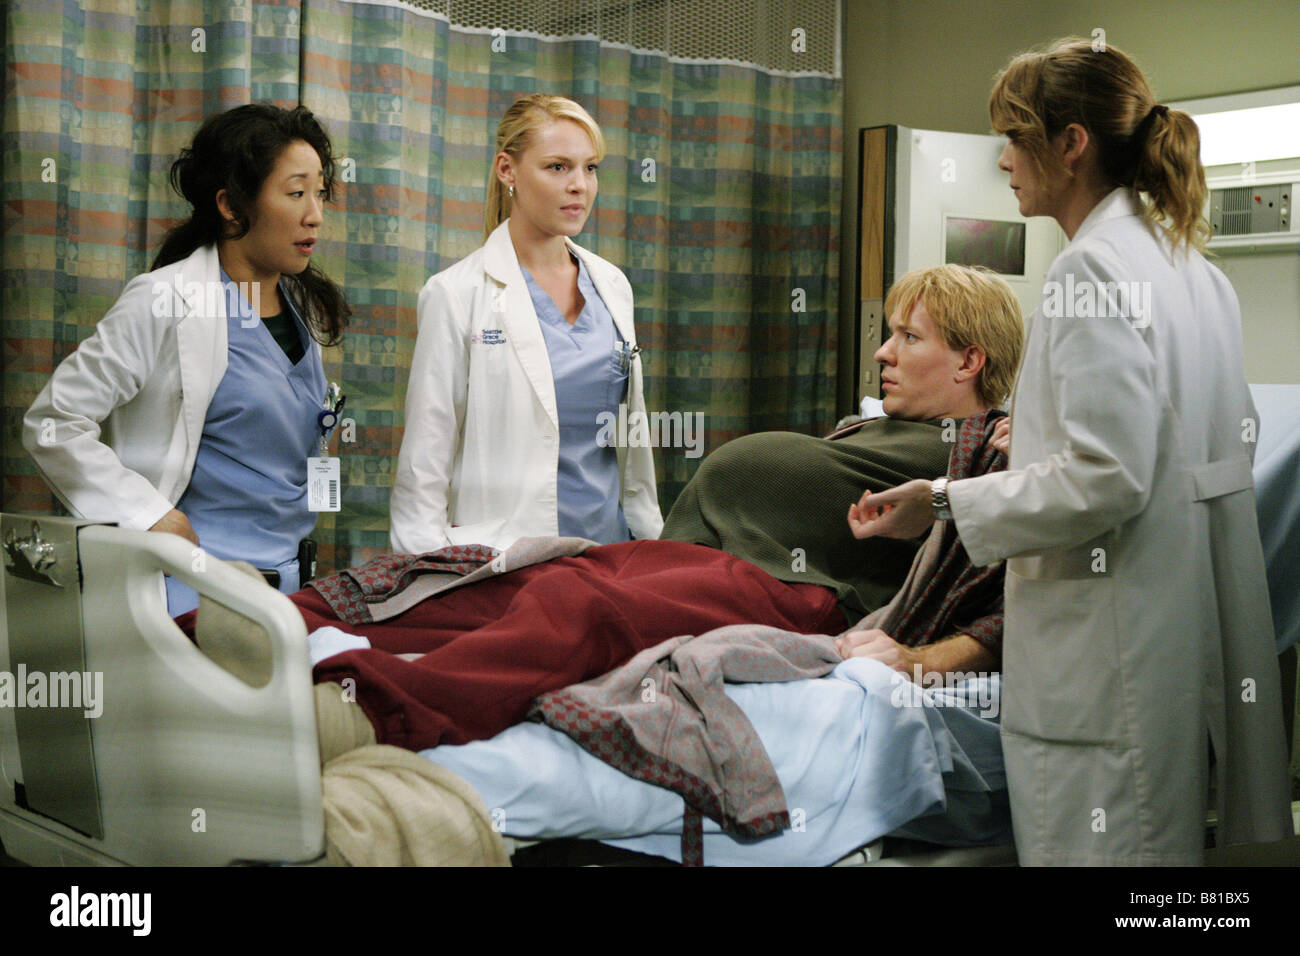 Greys Anatomy Tv Series 2005 Usa 2005 Season 2 Episode 7